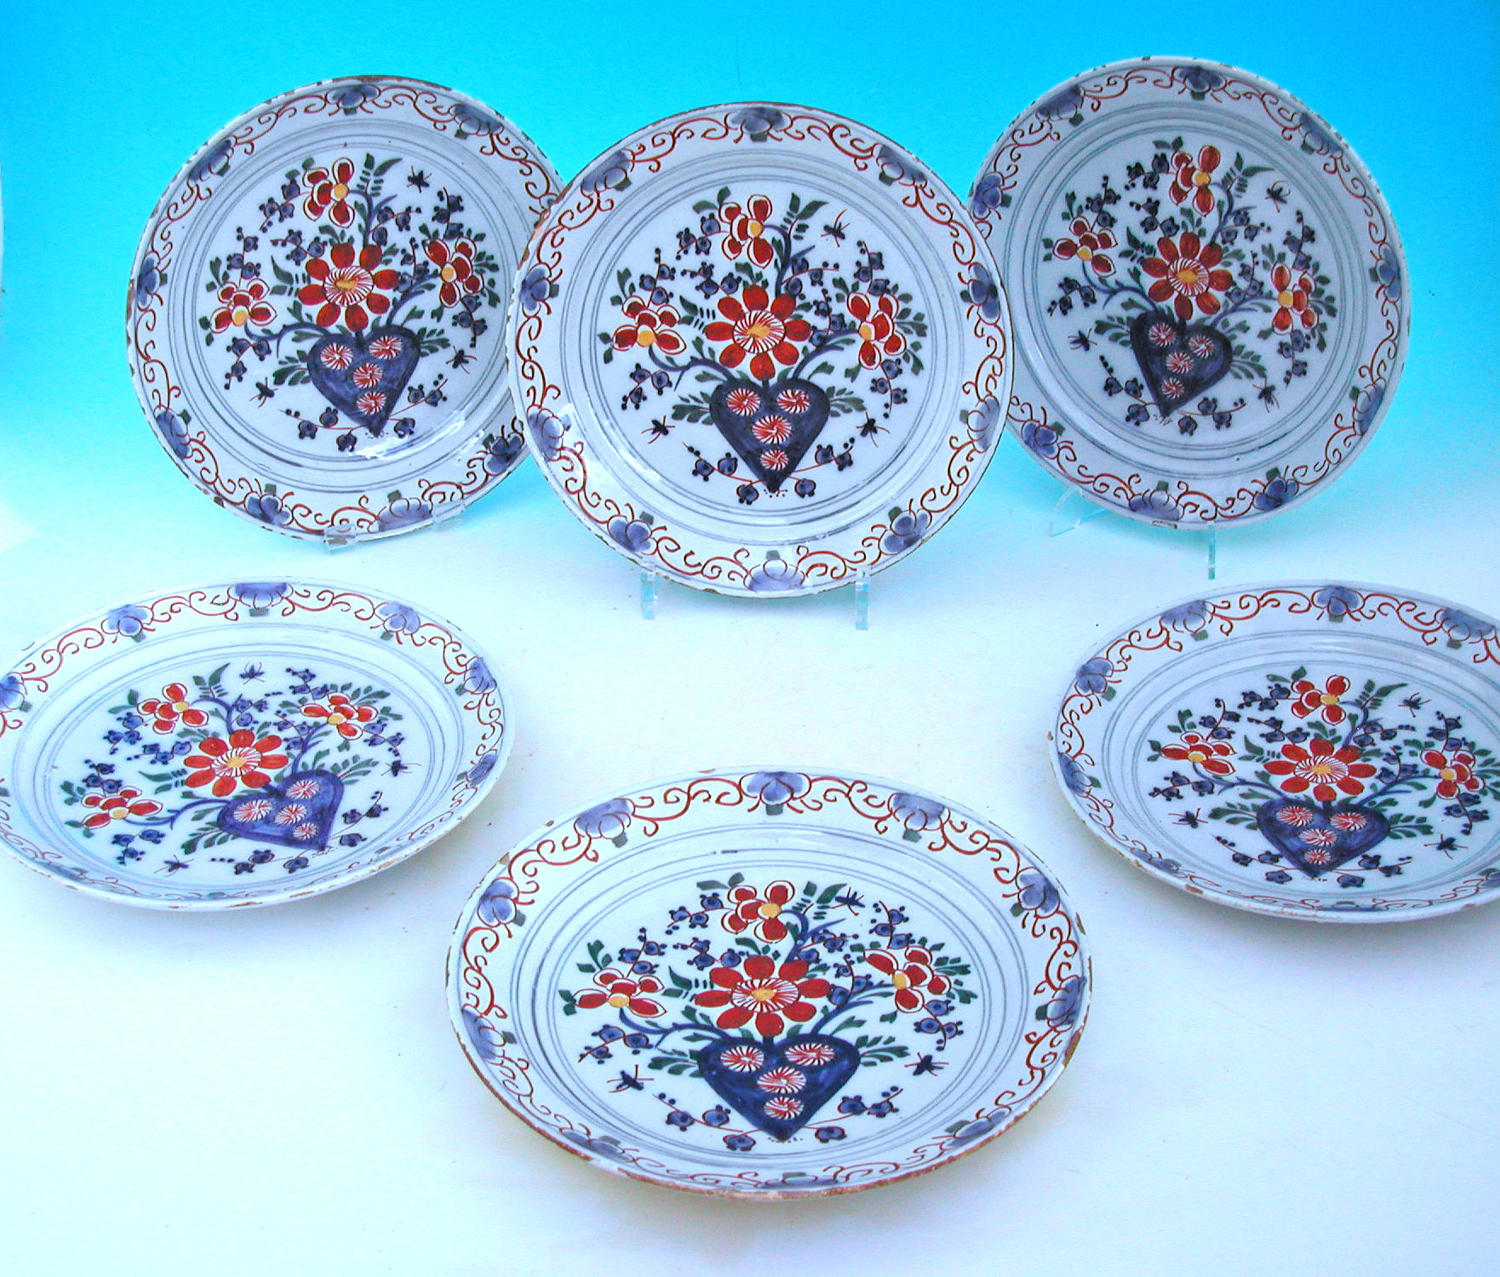 A True Set Of Six 18thc Polychrome Delftware Plates. Dutch. C1740-60